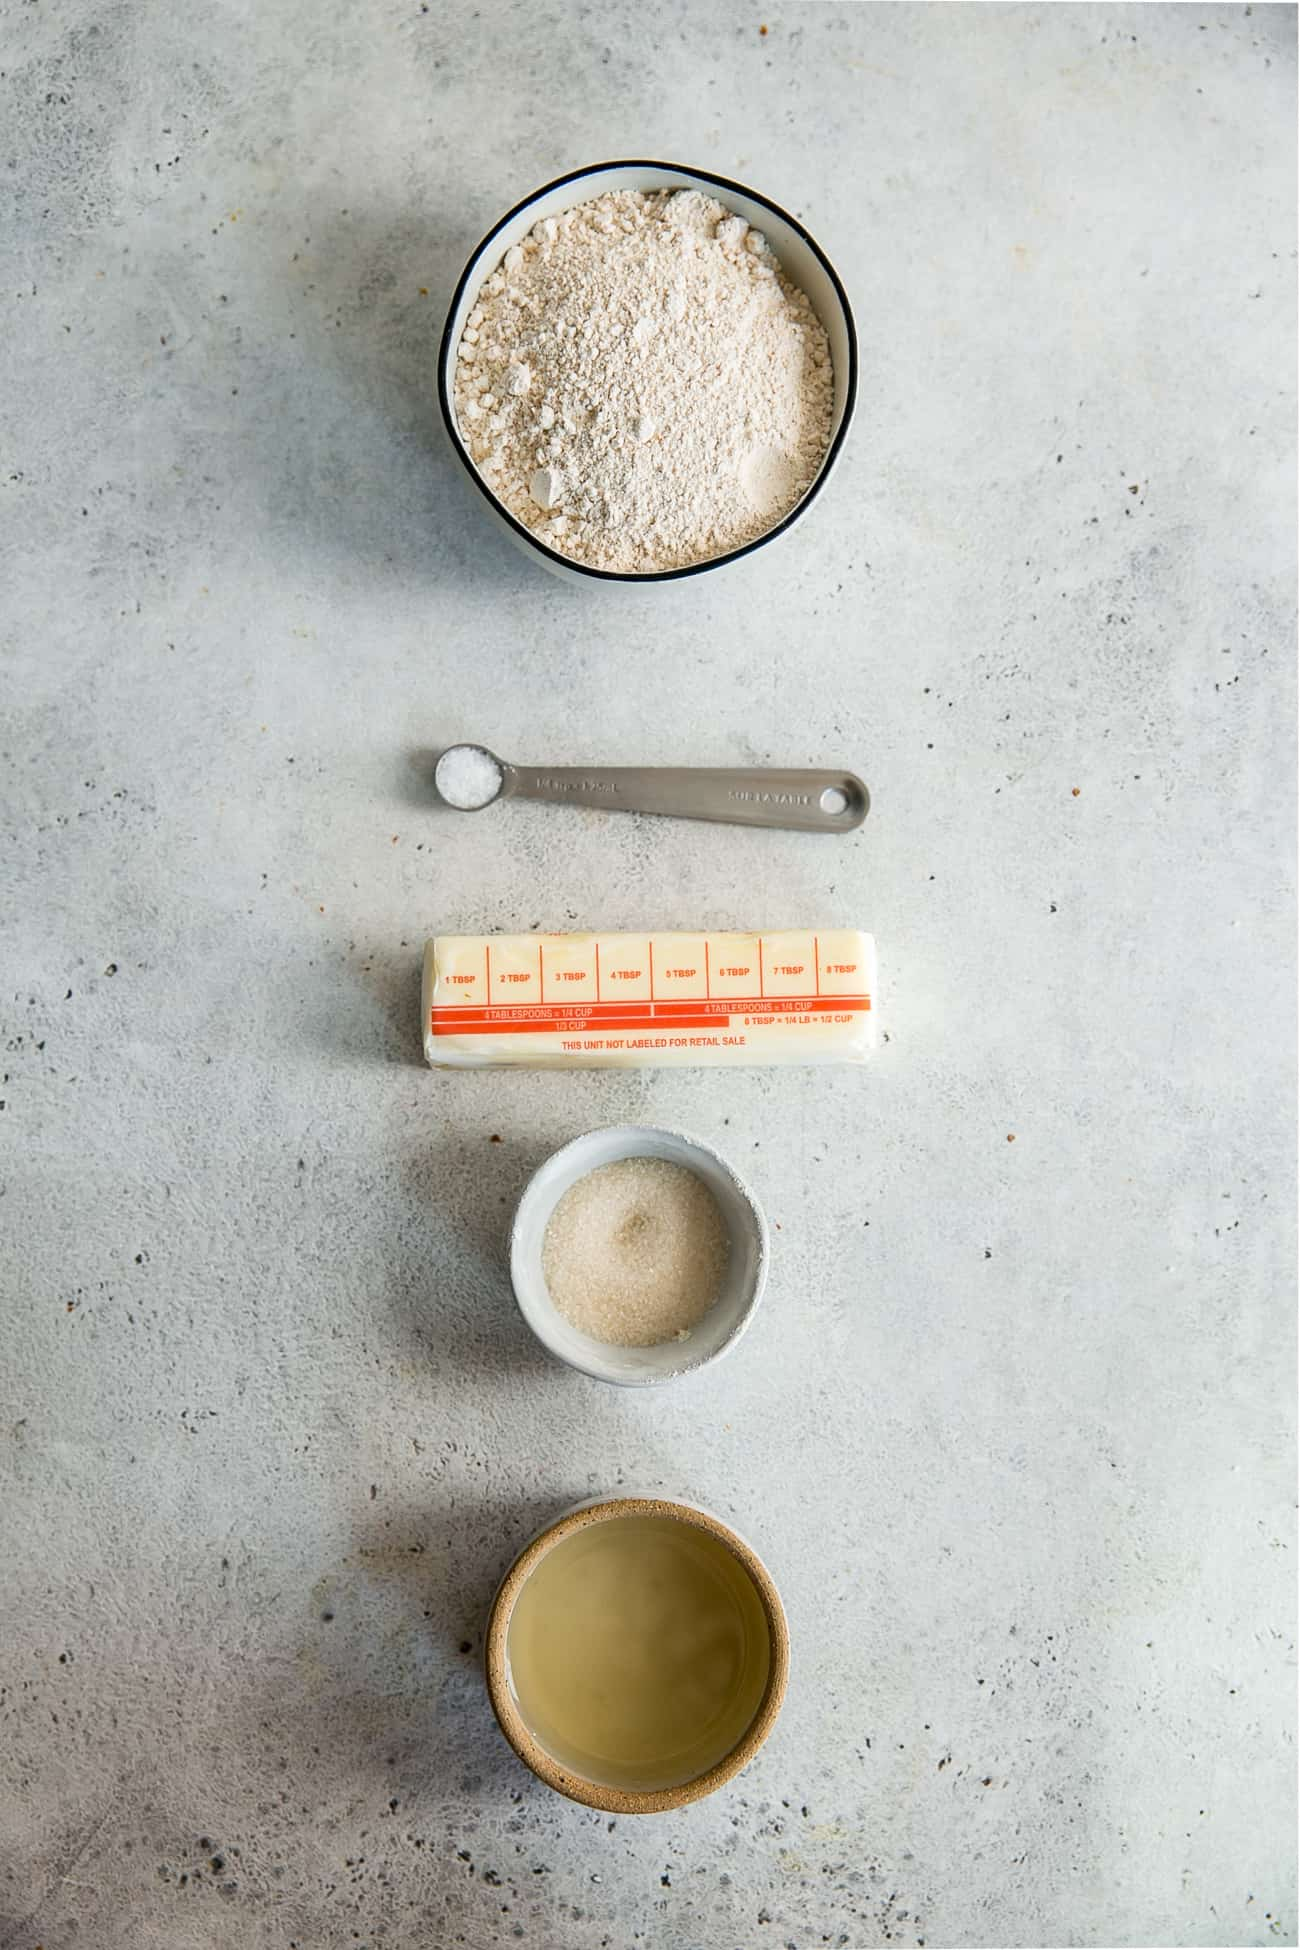 flour, teaspoon, butter, sugar and water in bowls on light gray board